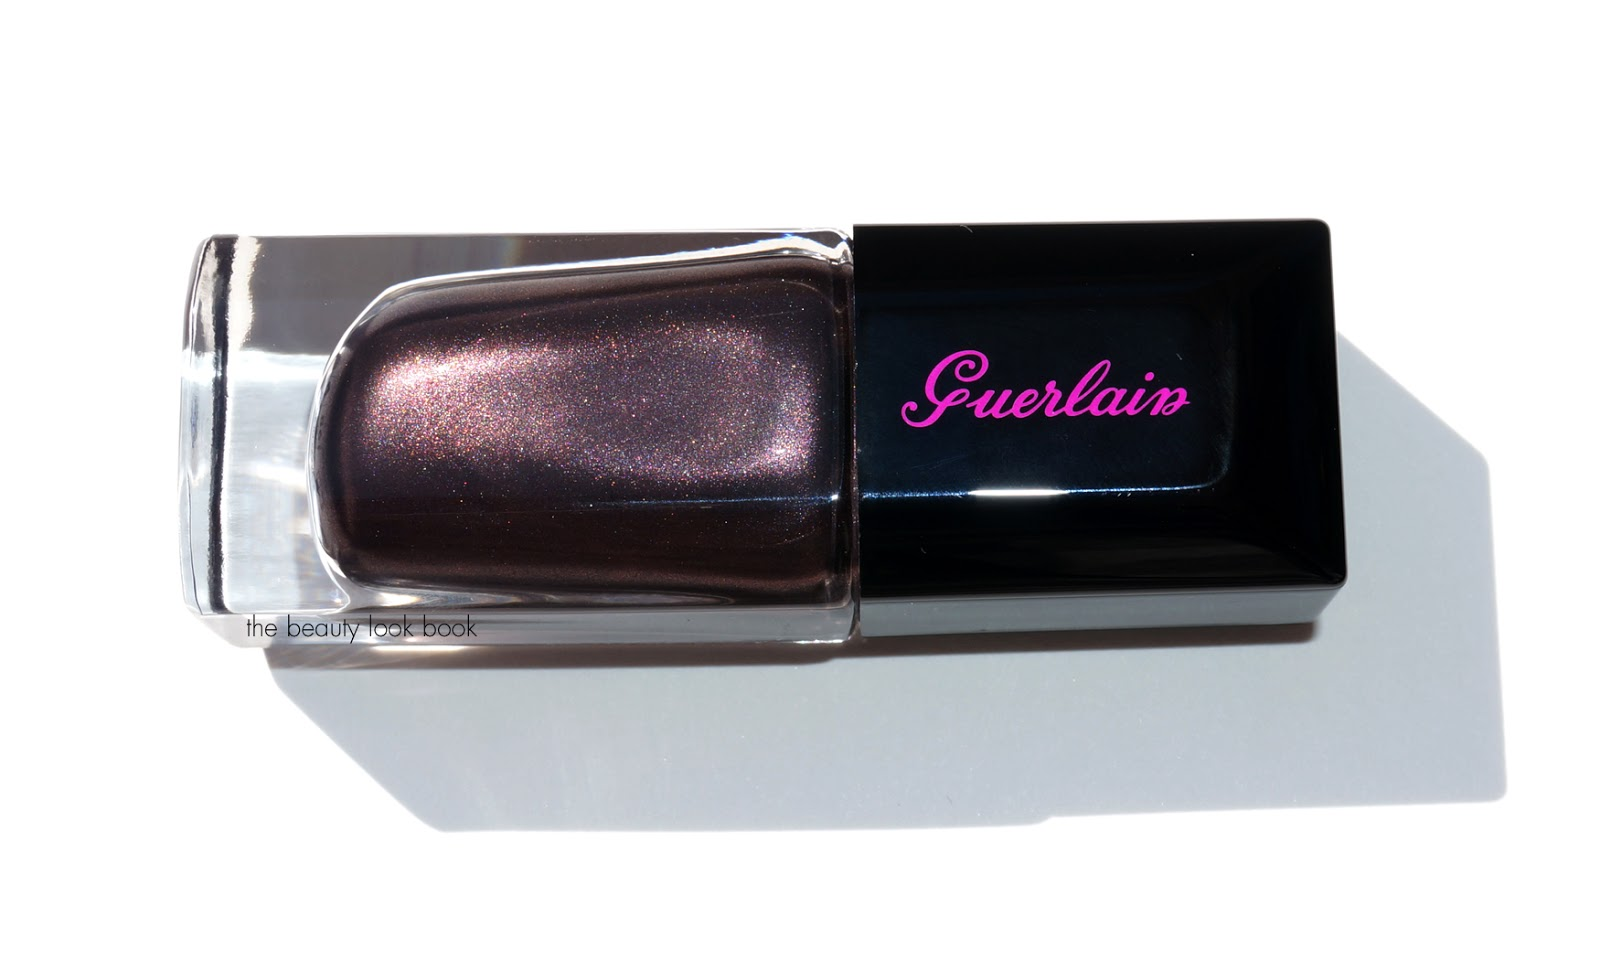 The Beauty Look Book: Guerlain Sulfurous #861 Nail Lacquer ...